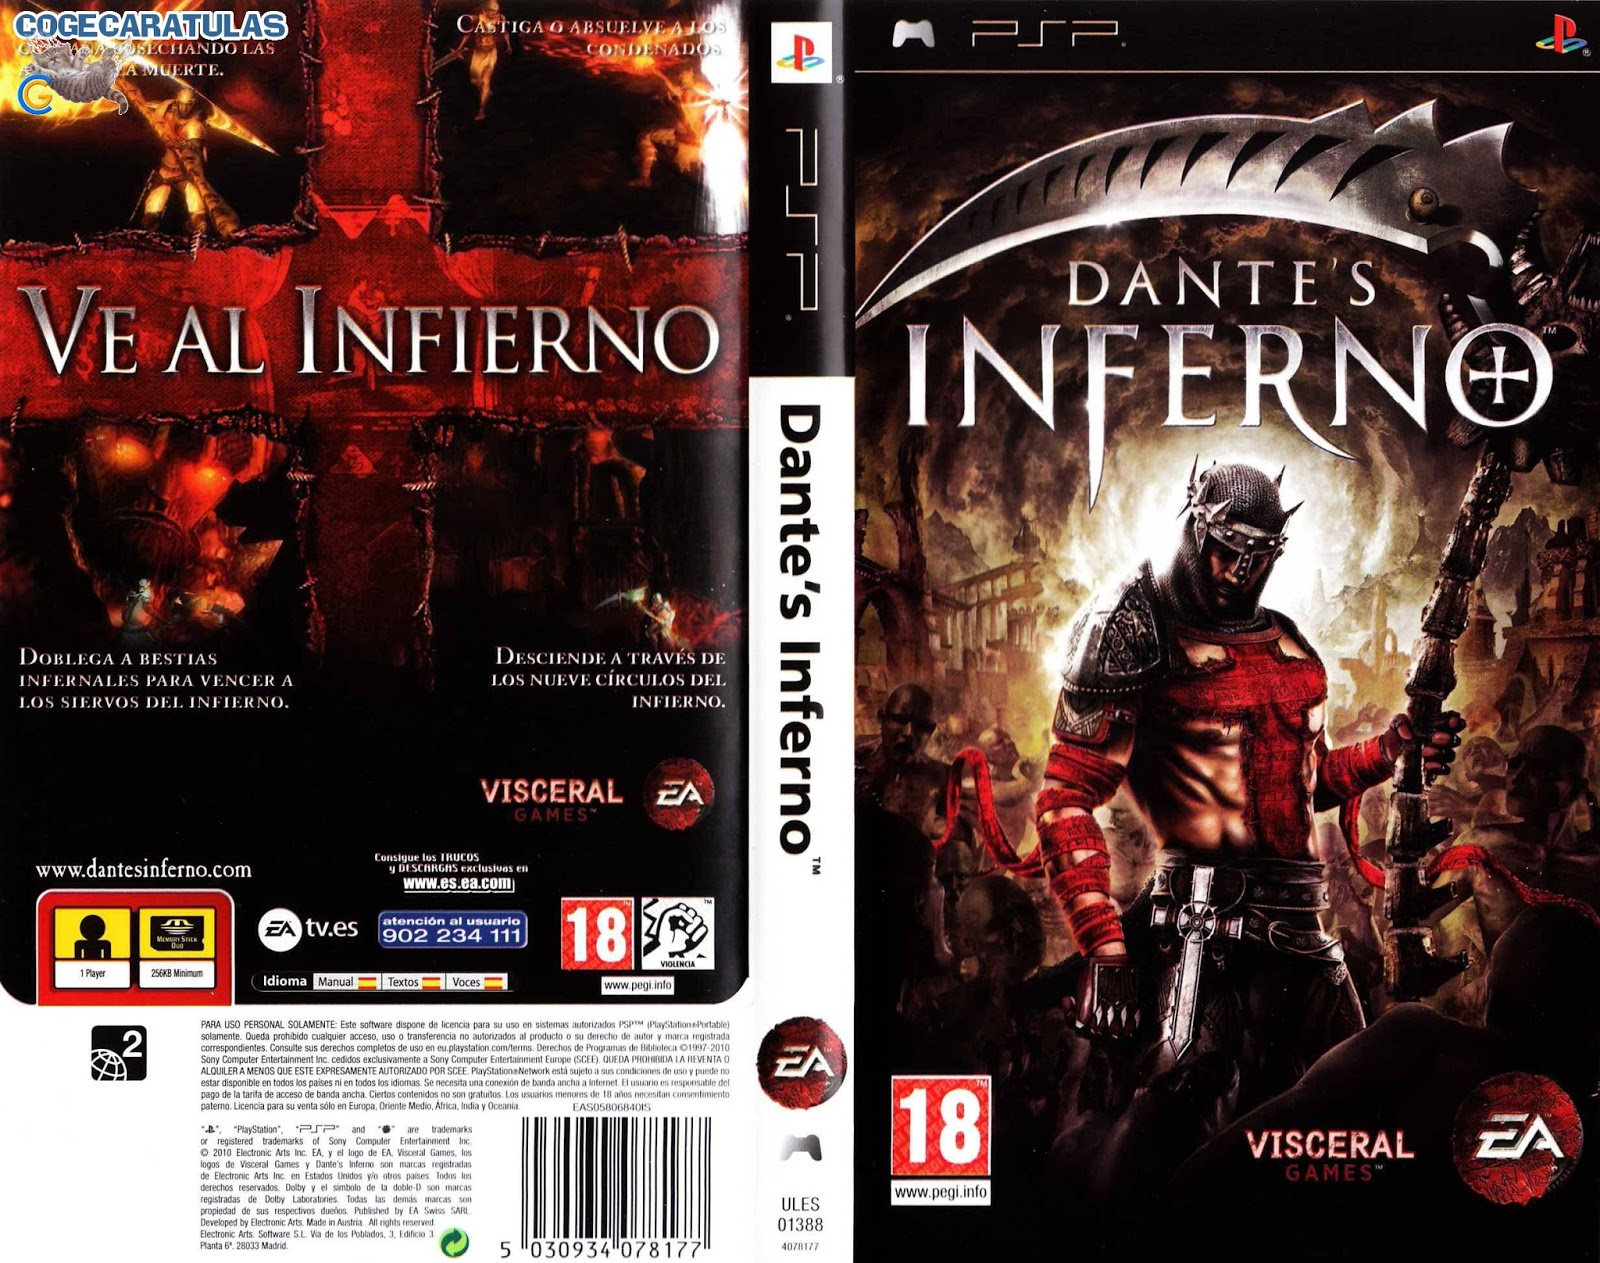 Dante's inferno: an animated epic on steam.